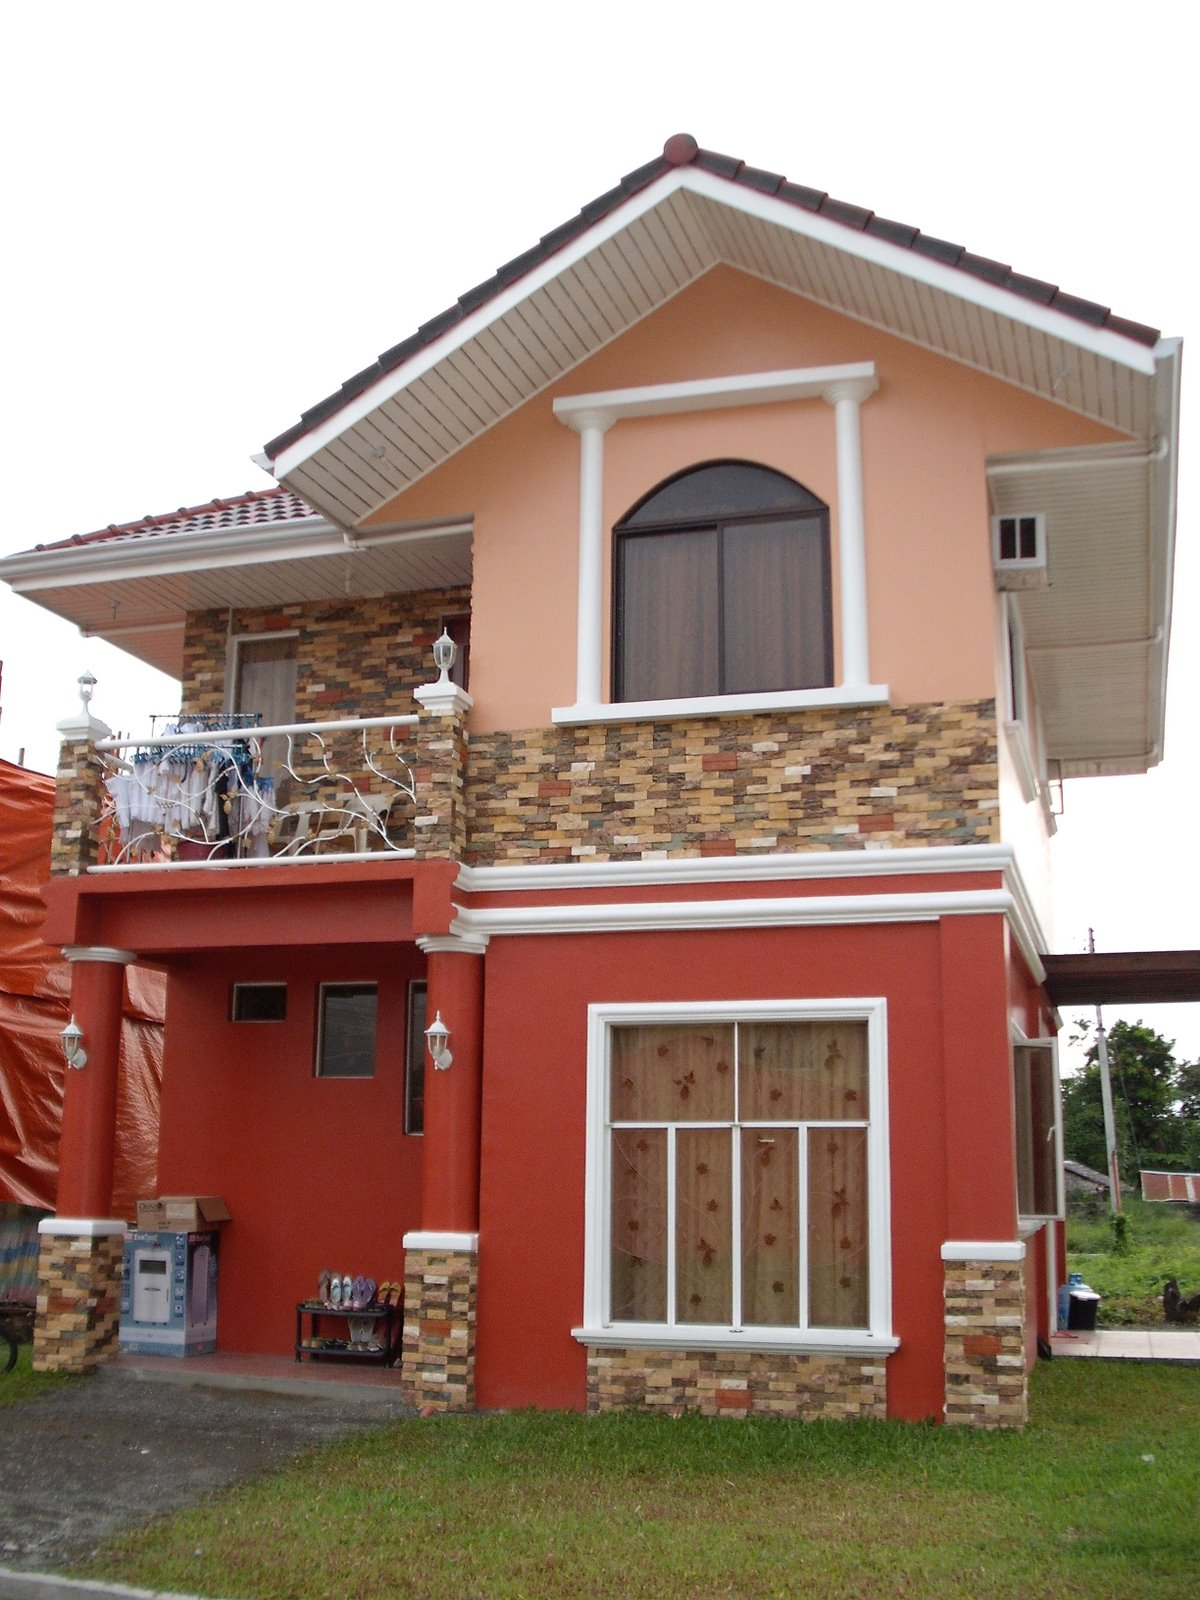 House Designs Photos Of Models Building Exterior Design: Royal Residence Iloilo By Pansol Realty And Development